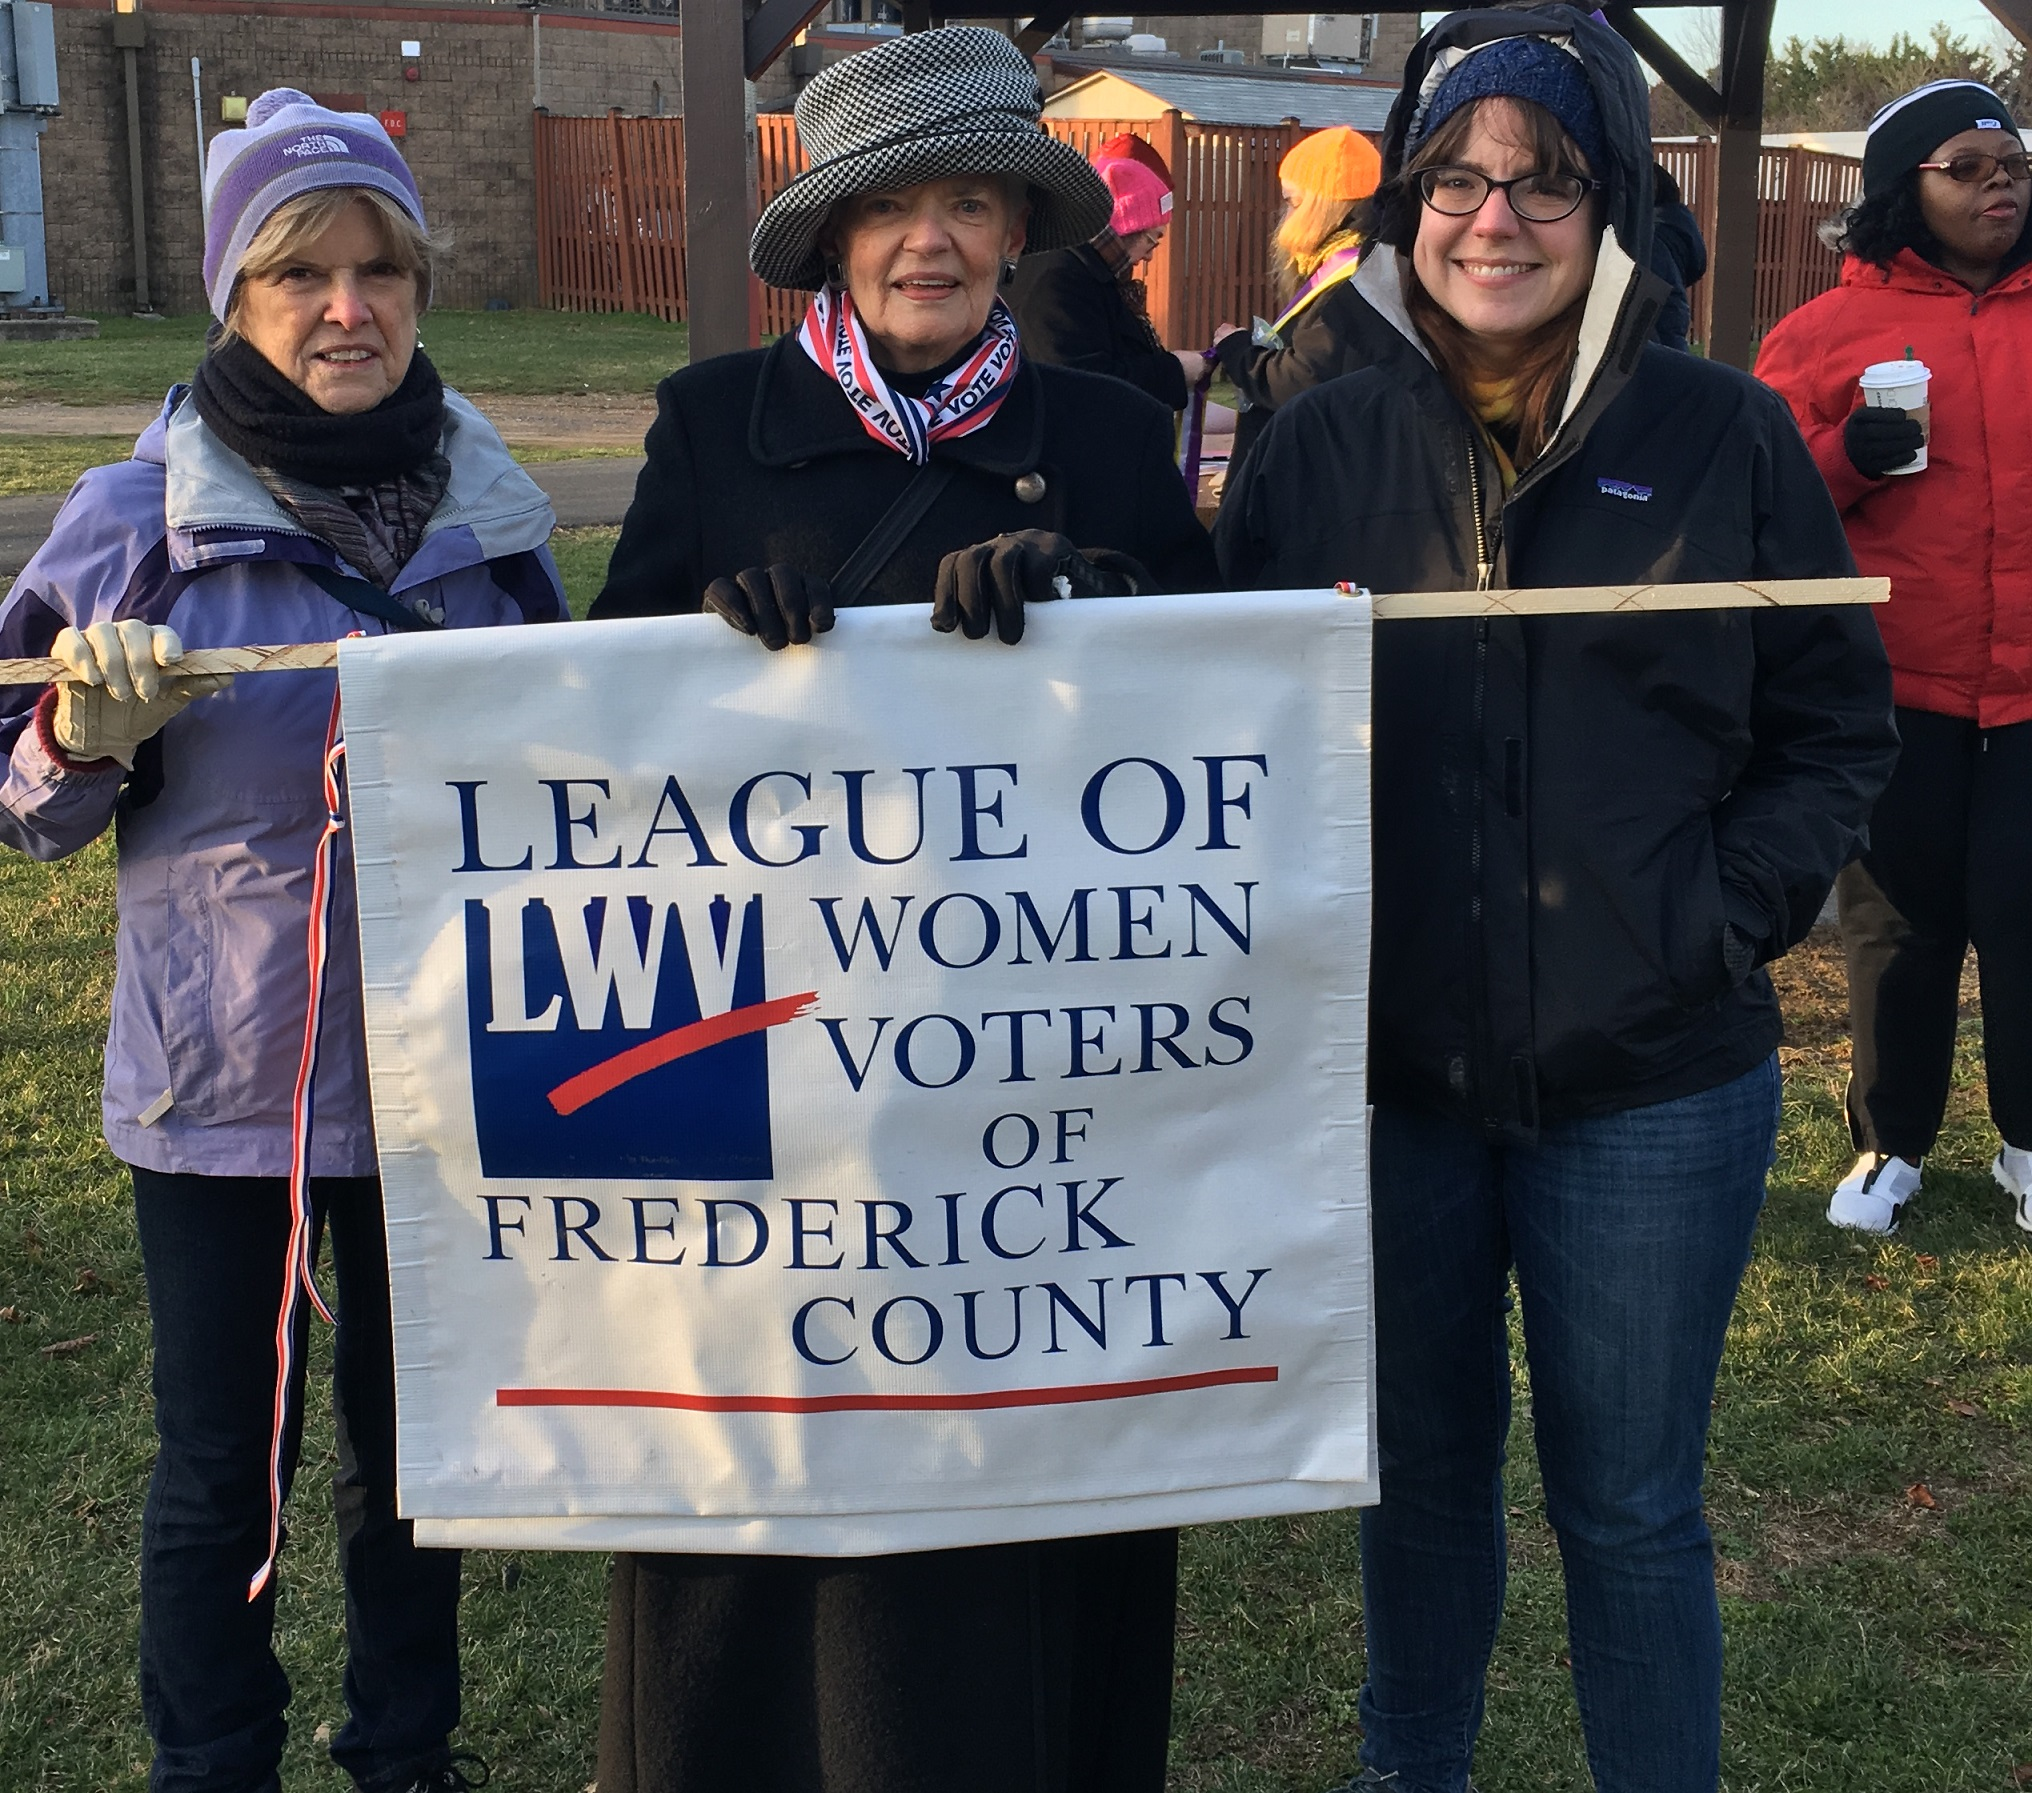 Our members marched with other women's groups in Frederick